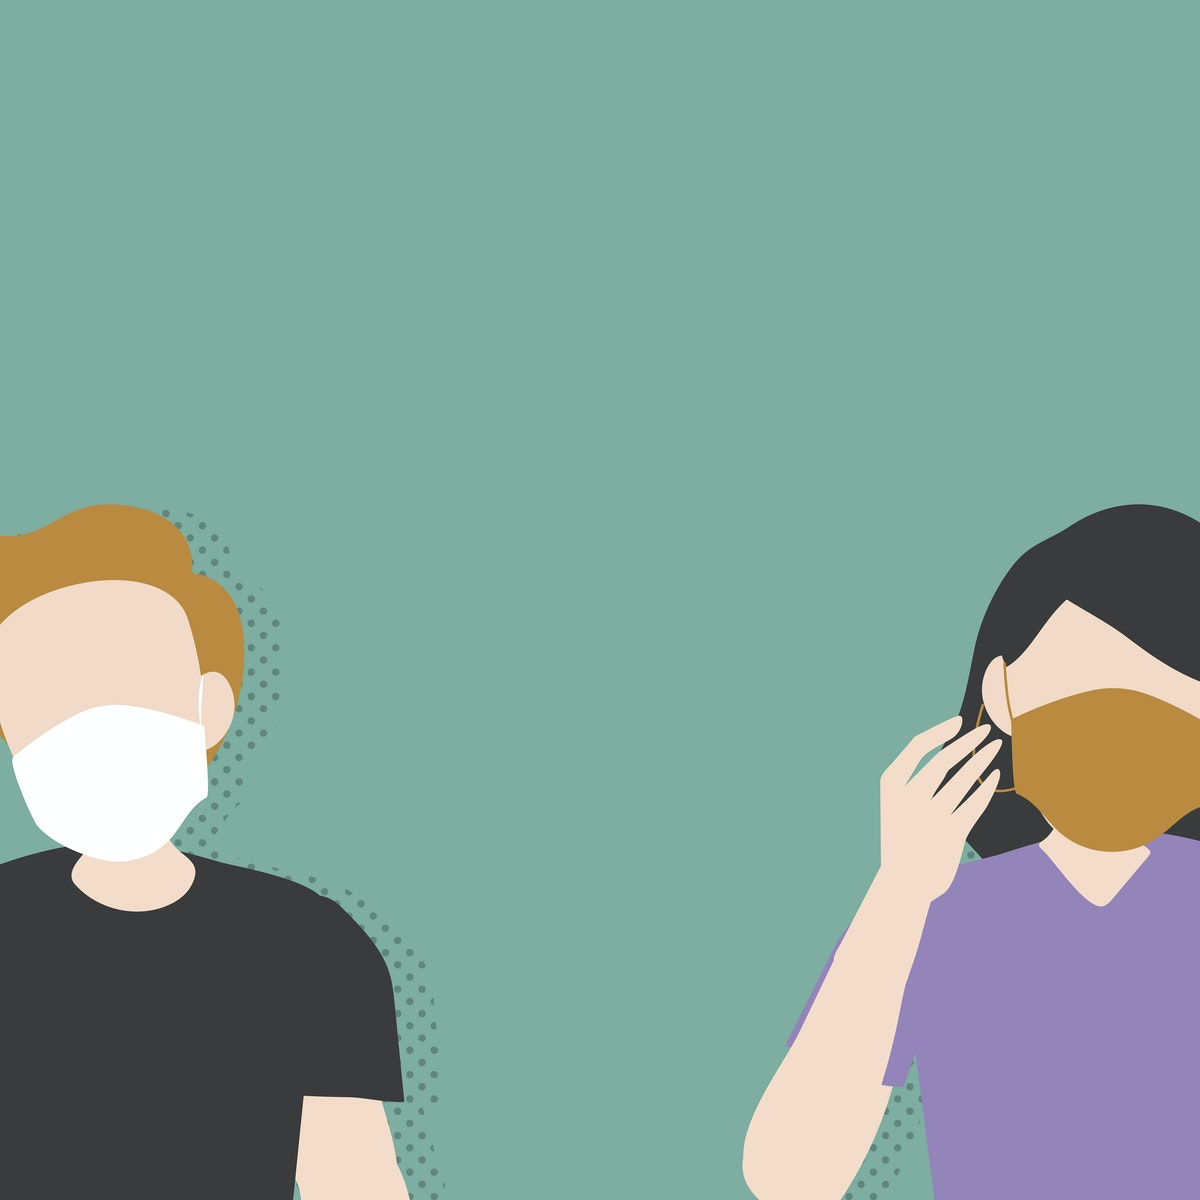 Illustration of two people wearing face coverings